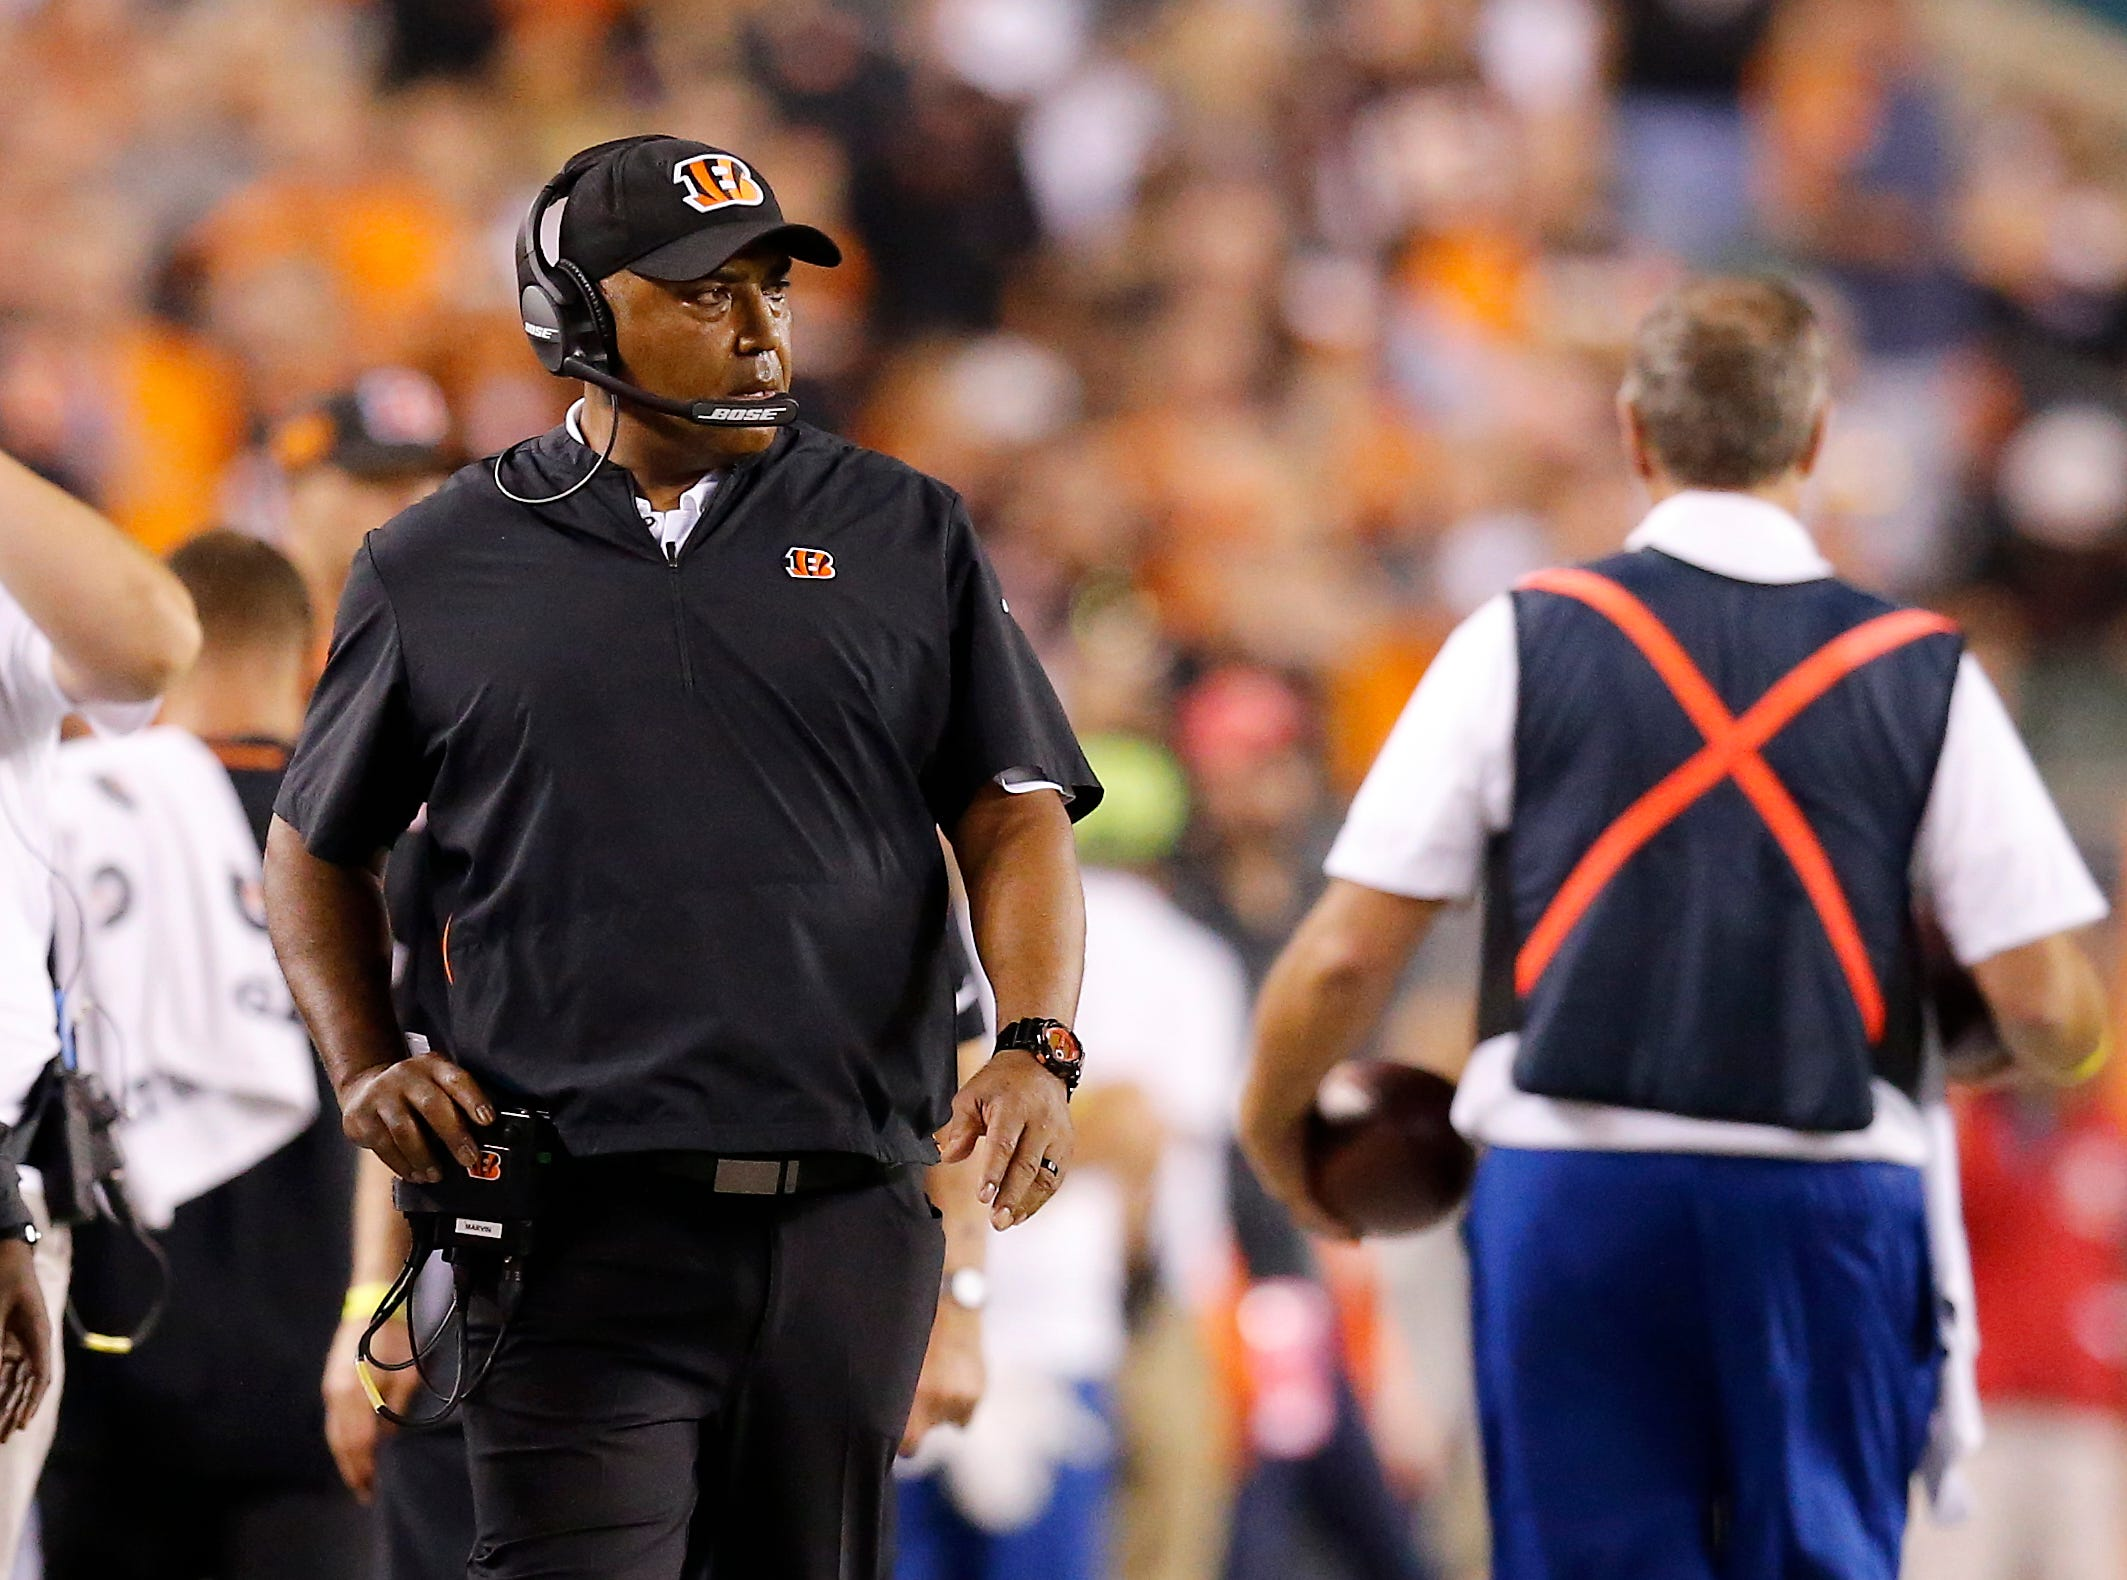 Cincinnati Bengals head coach Marvin Lewis paces the sideline in the second quarter of the NFL Week 2 game between the Cincinnati Bengals and the Baltimore Ravens at Paul Brown Stadium in downtown Cincinnati on Thursday, Sept. 13, 2018. The Bengals led 28-14 at halftime.